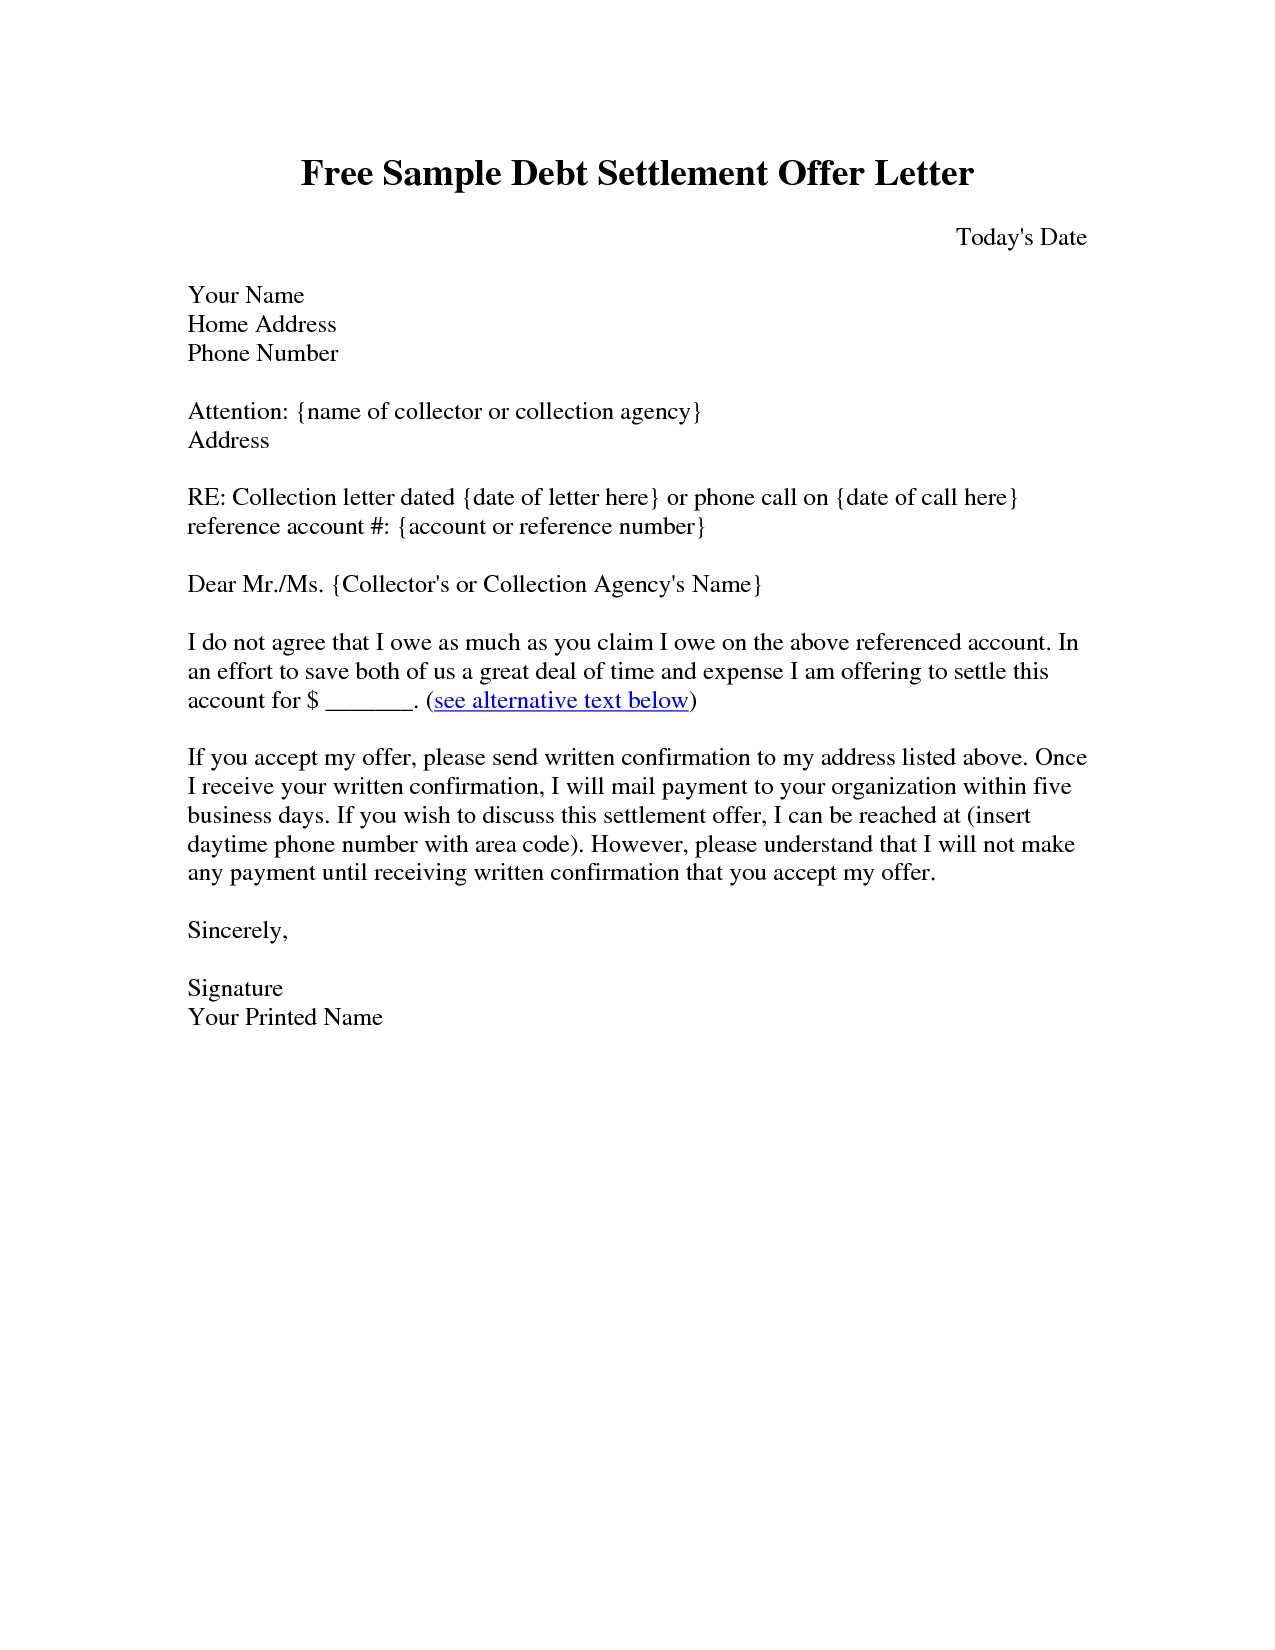 Debt Collection Template Letter Free - Sample Settlement Letter Debt Settlement Letter Sample